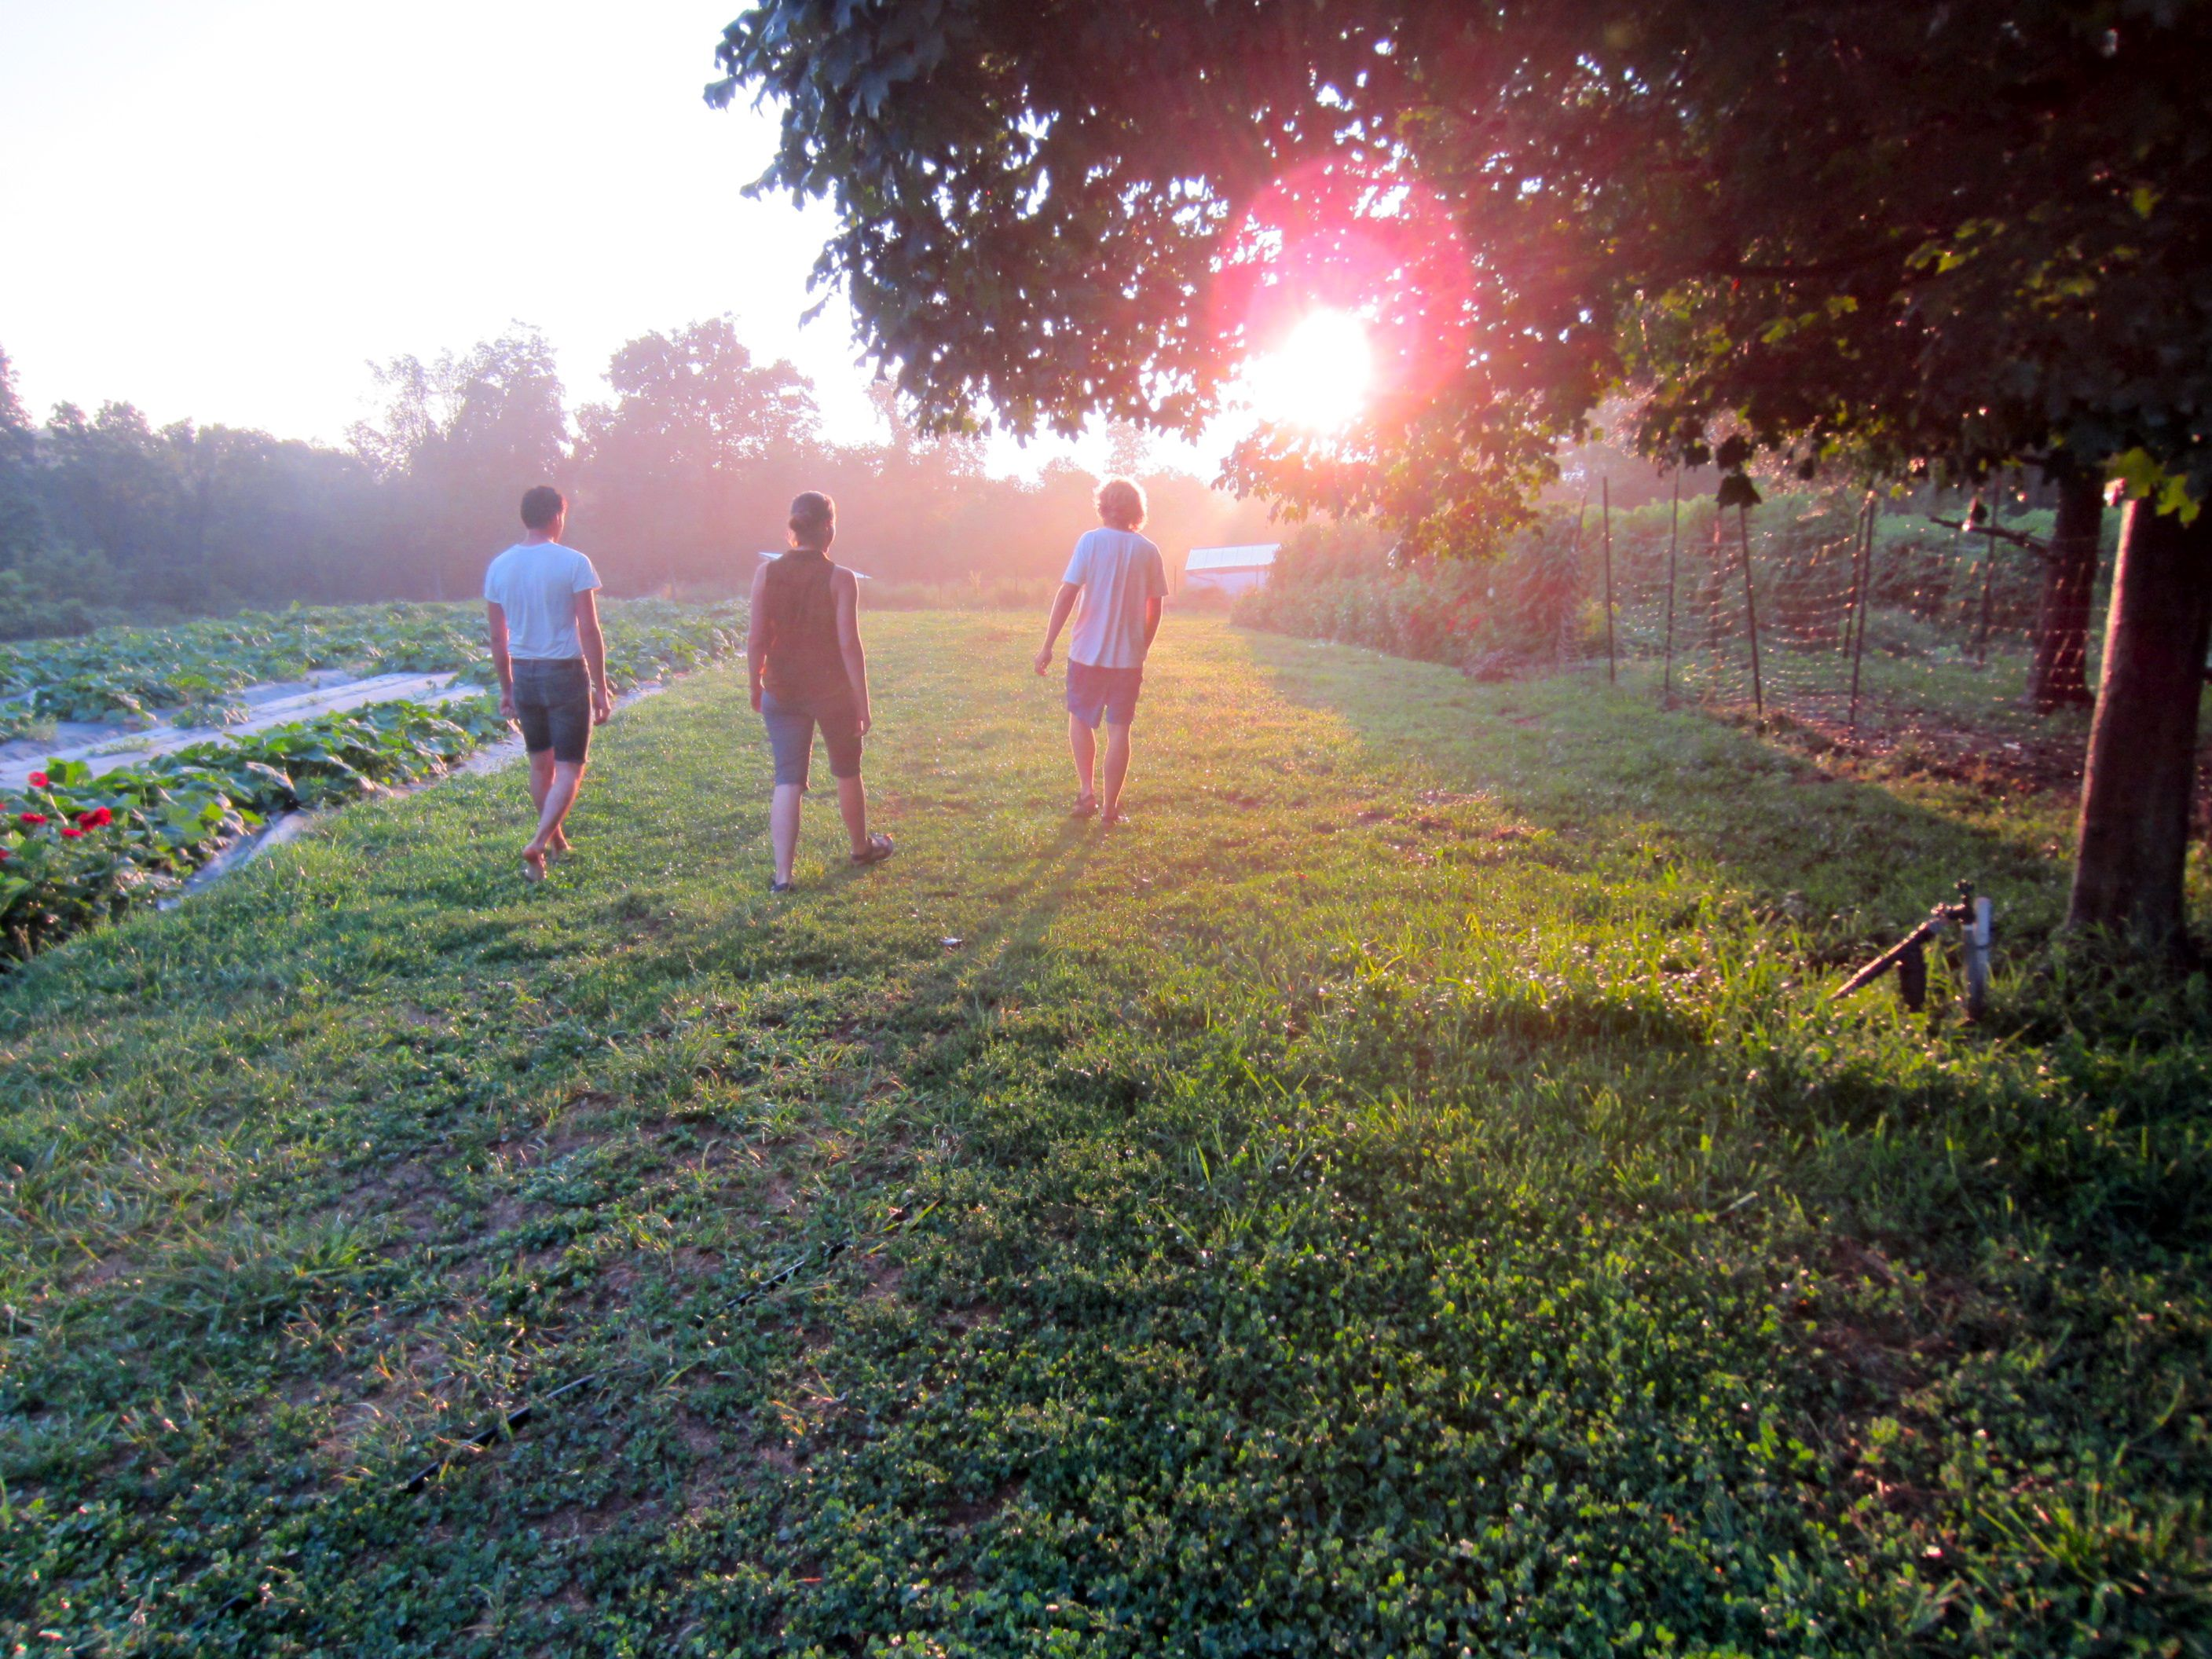 WWOOF-USA: Volunteer on farms around US and get free place